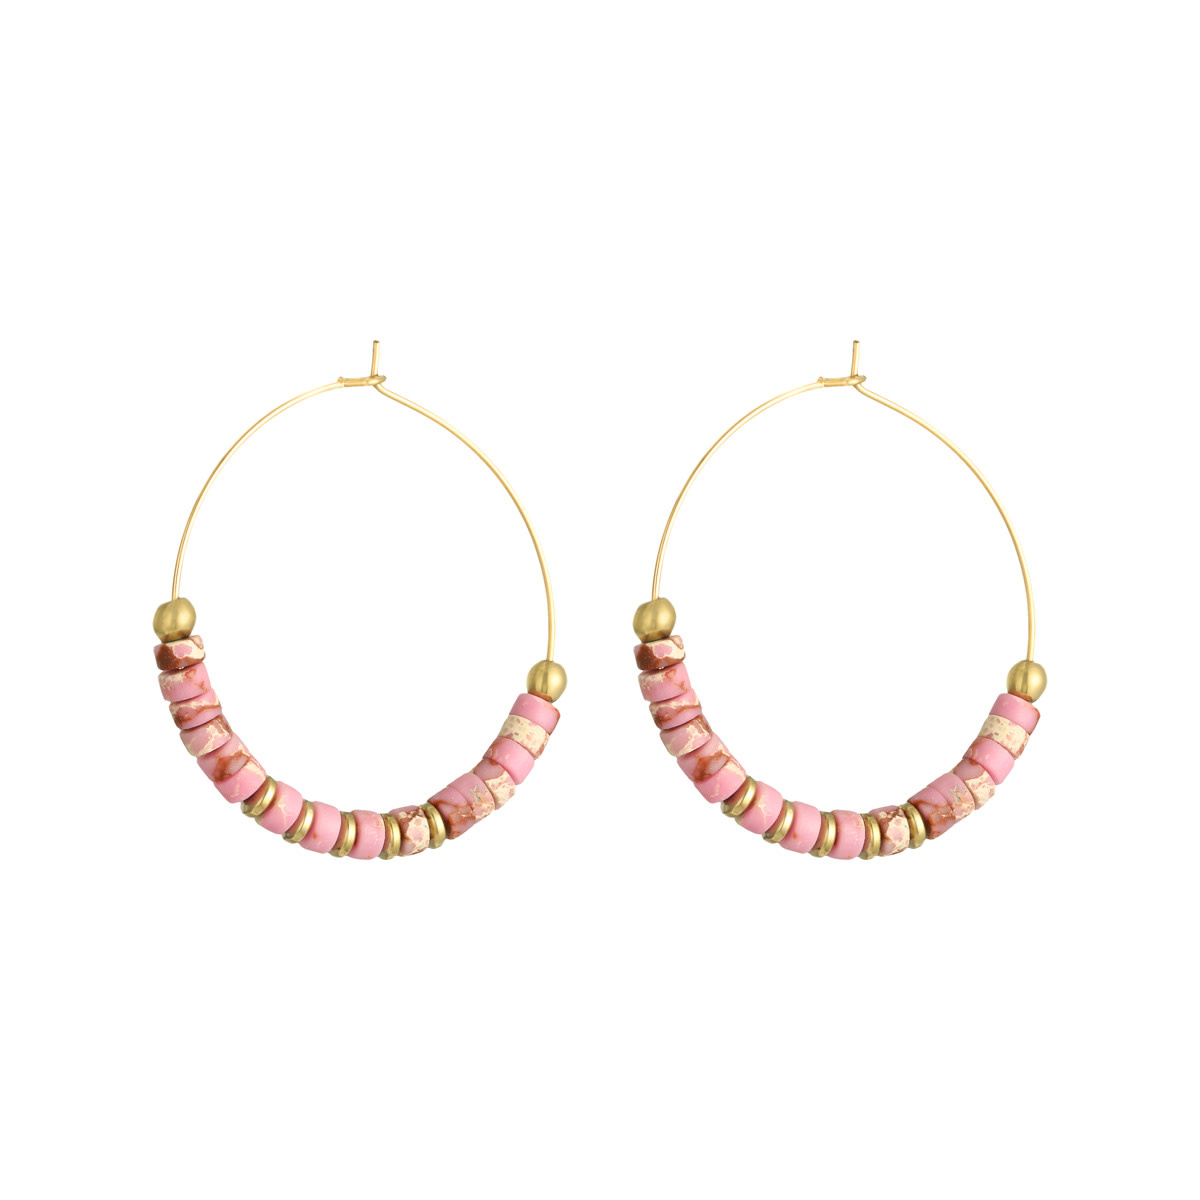 With love Earrings beaded hoops - pink - large